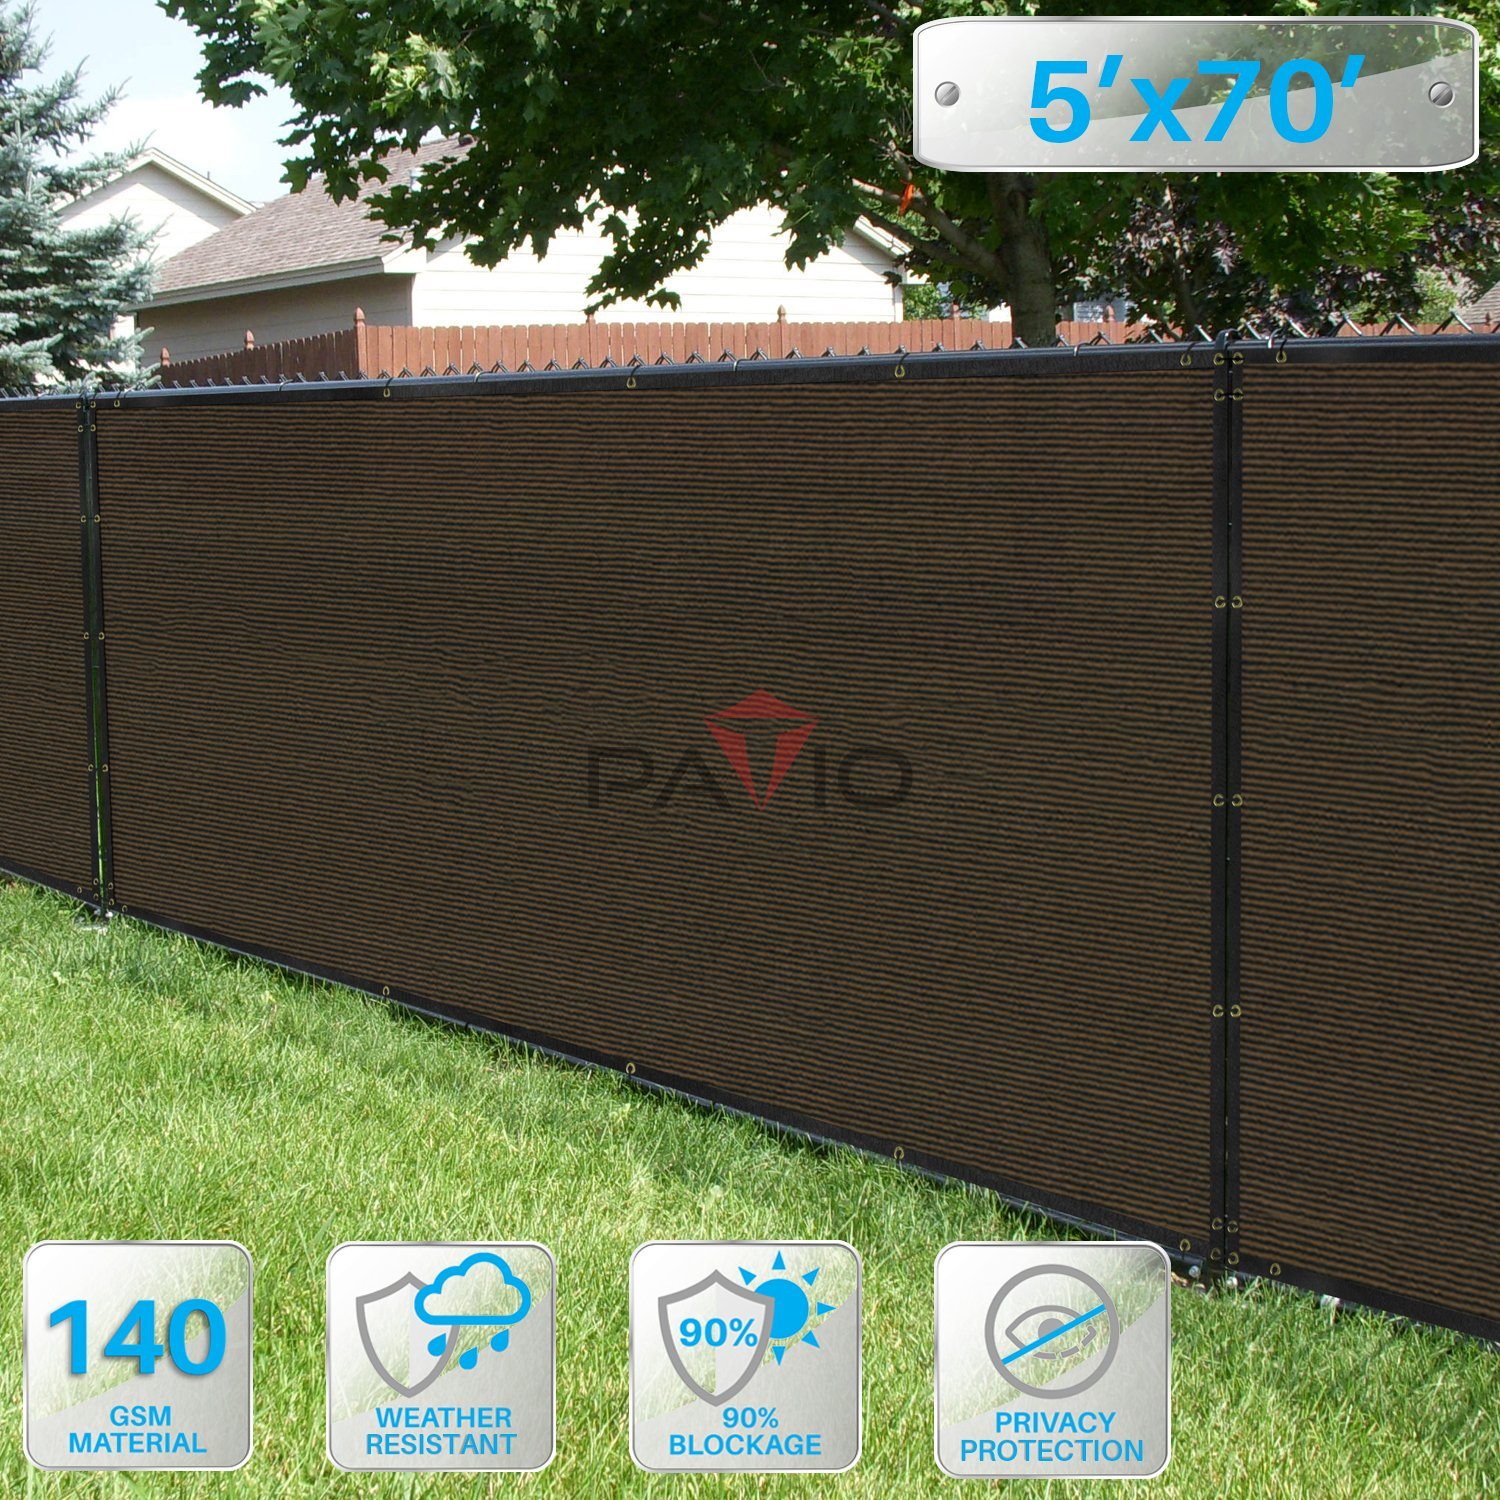 Patio Paradise 5' x 70' Brown Fence Privacy Screen, Commercial Outdoor Backyard Shade Windscreen Mesh Fabric with brass Gromment 85% Blockage- 3 Years Warranty (Customized Sizes Available)